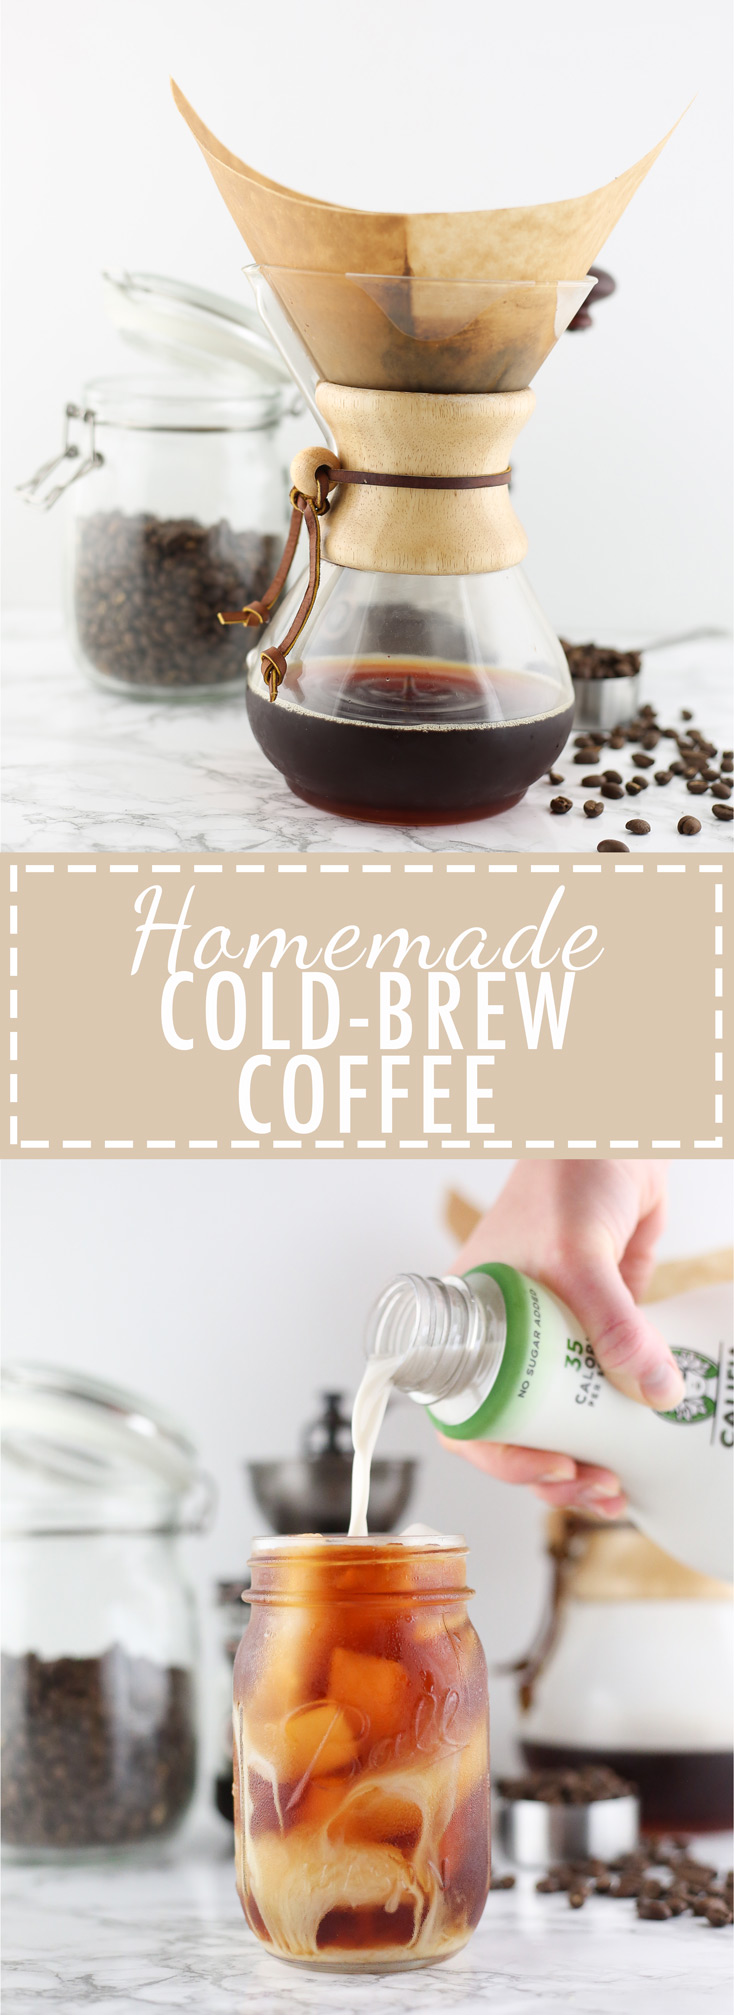 Cold brew coffee, homemade, recipe, cost effective, cheap, easy, simple, summertime